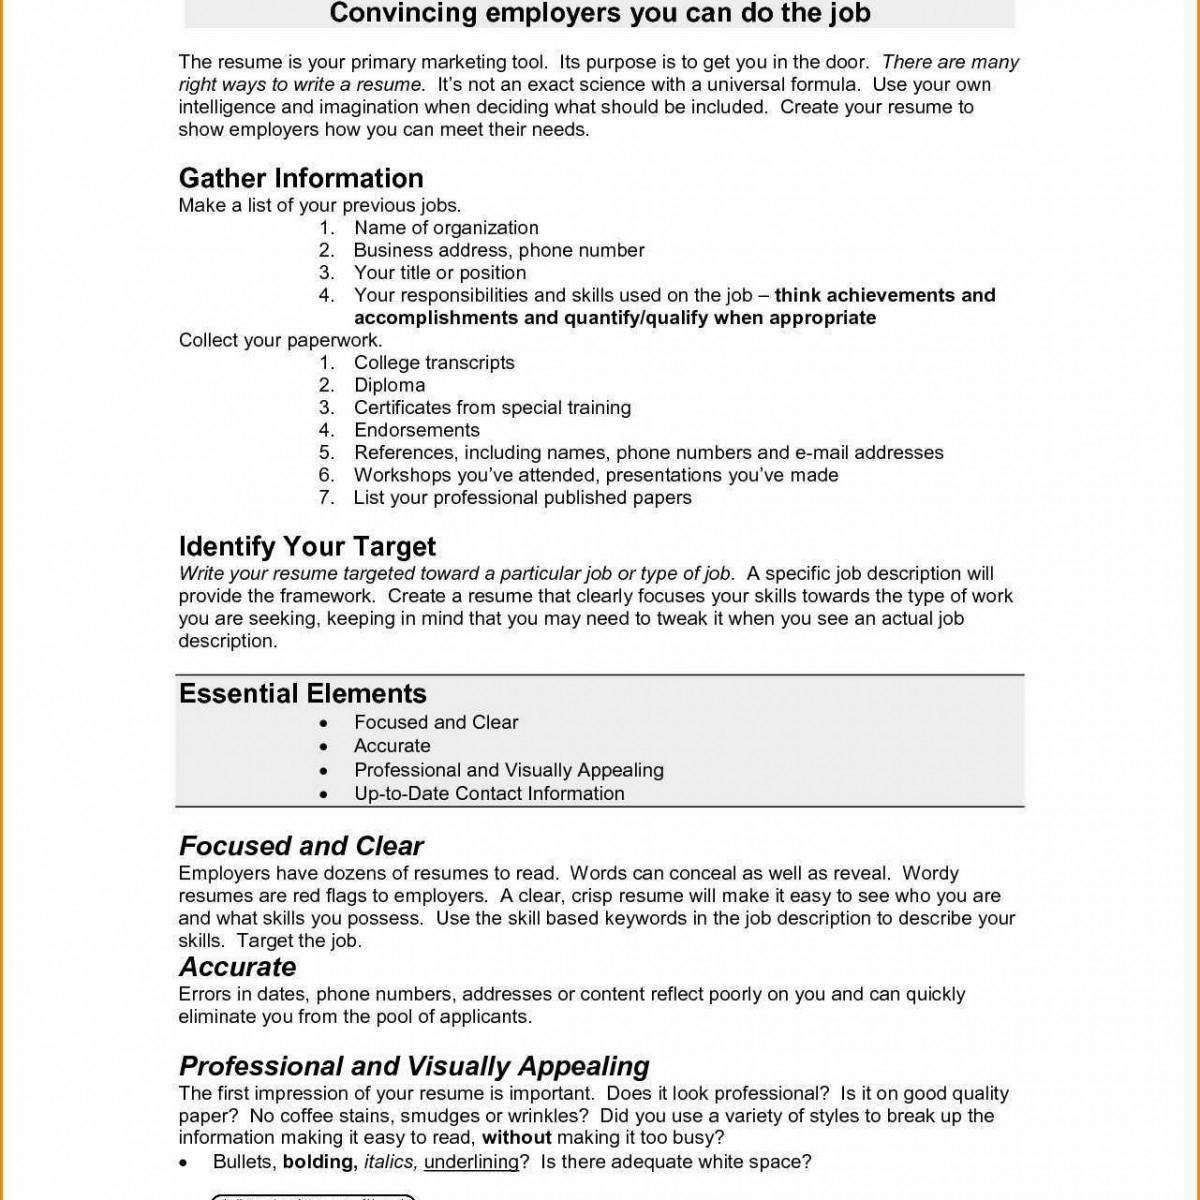 Types Of Resume - Different Types Resumes New Types Resume New Entry Level Resume